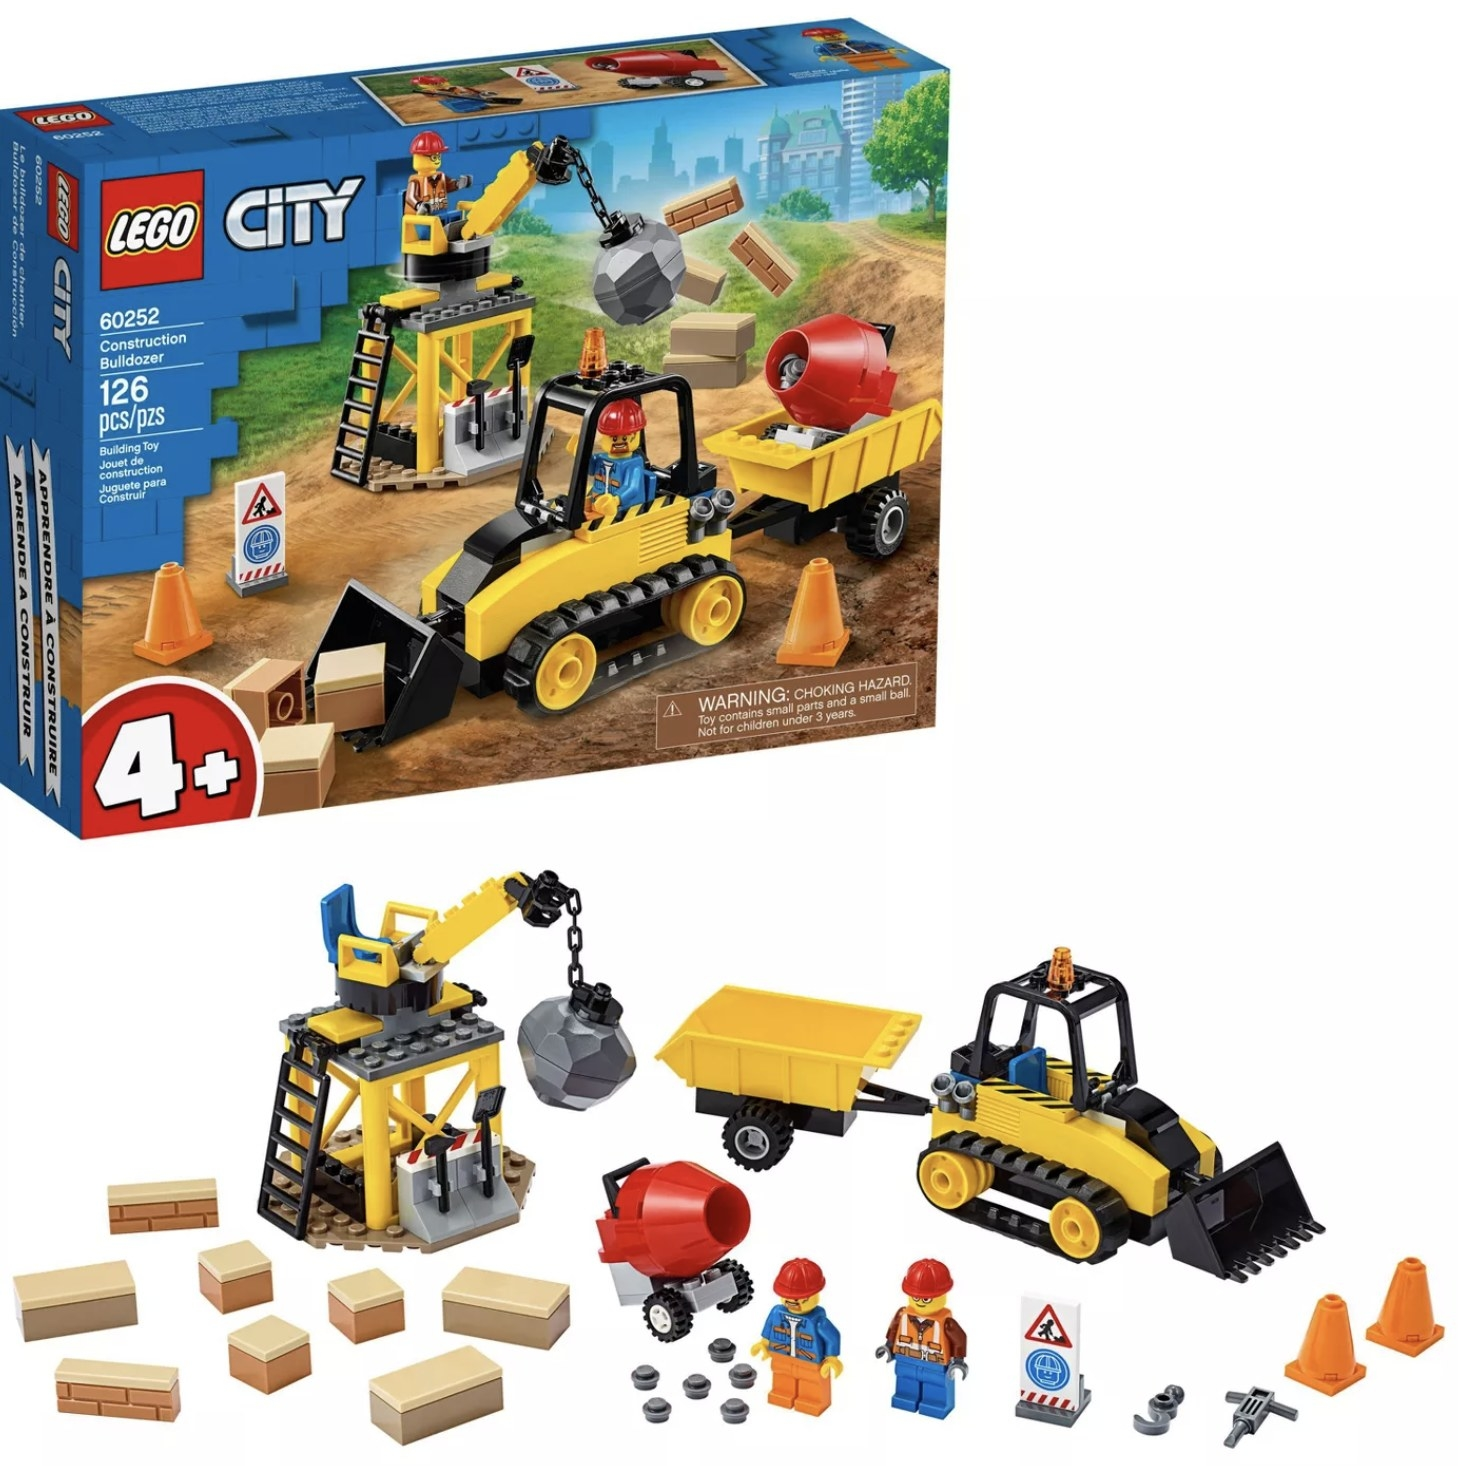 A lego set of bulldozers, cranes, materials, and construction workers